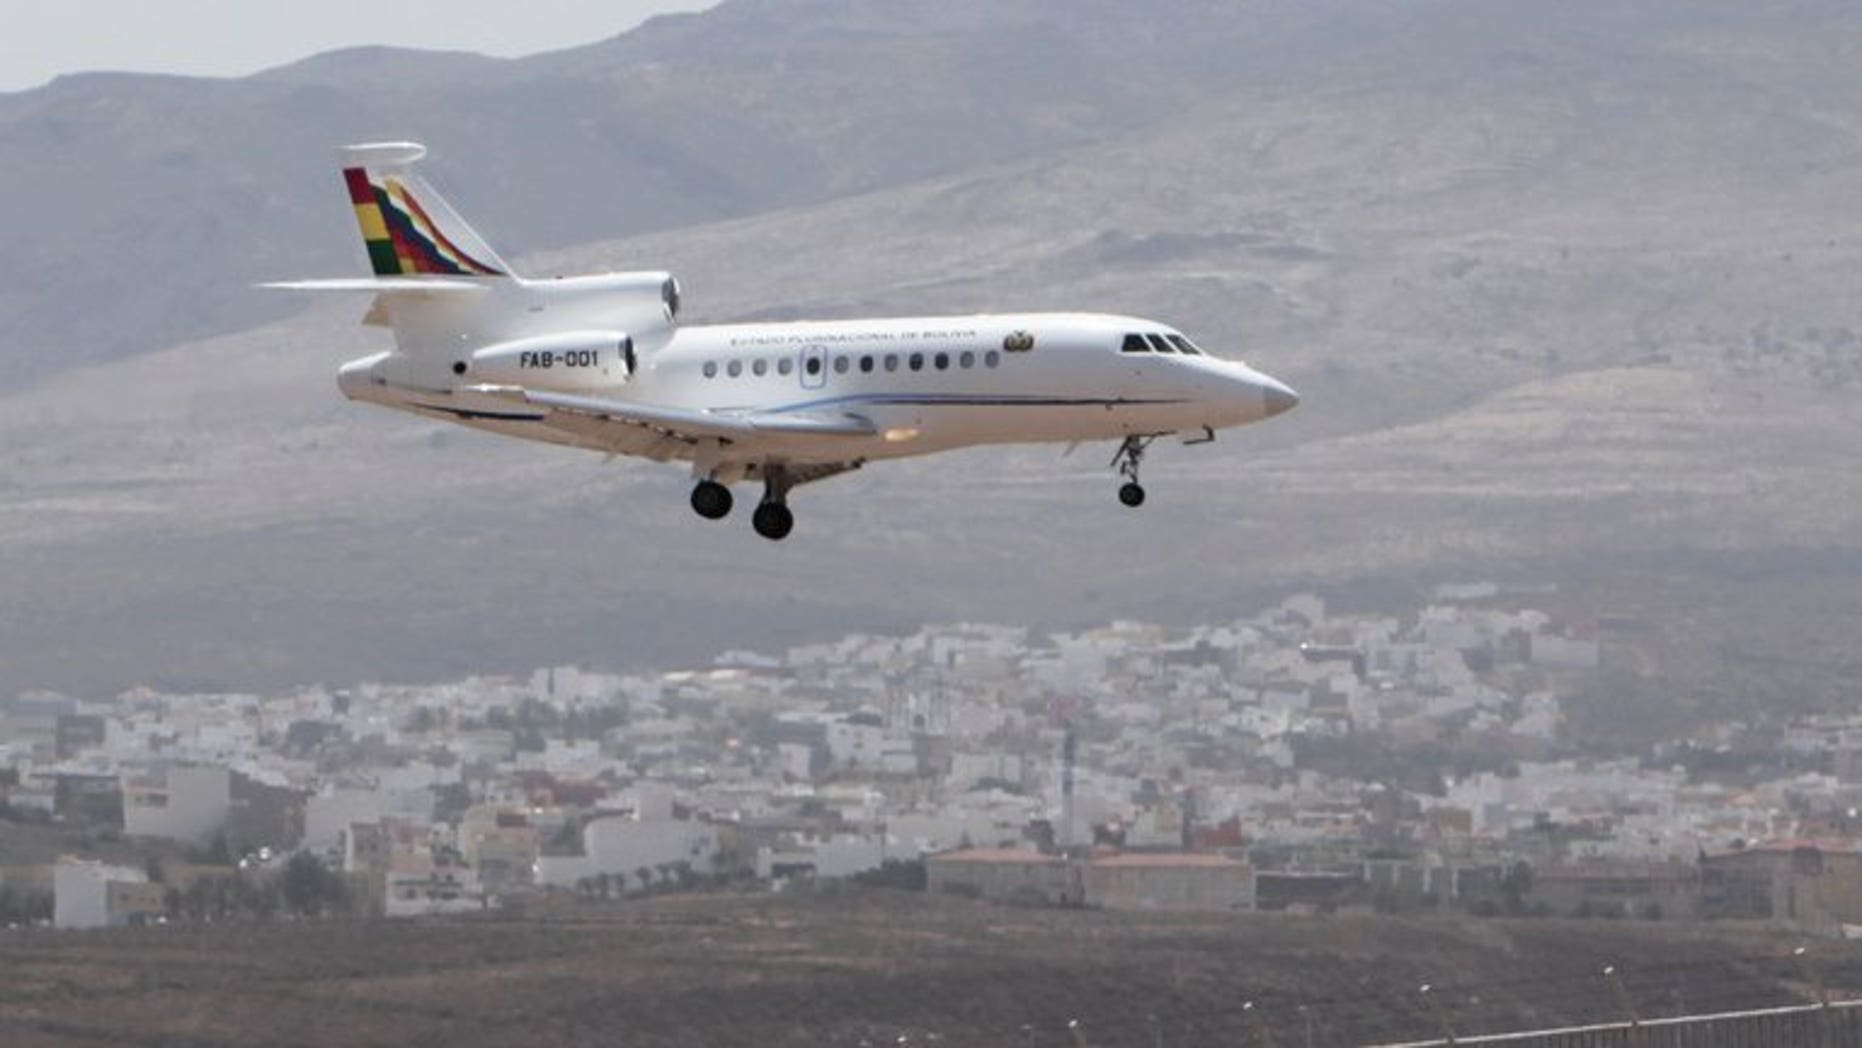 The plane of Bolivia's President Evo Morales lands at Las Palmas airport, on the Spanish Canary Island of Gran Canaria, on July 3, 2013. Leftist Latin America leaders are preparing to meet in Bolivia on Thursday following the controversial diversion of Morales's aircraft in Europe, La Paz said Wednesday.